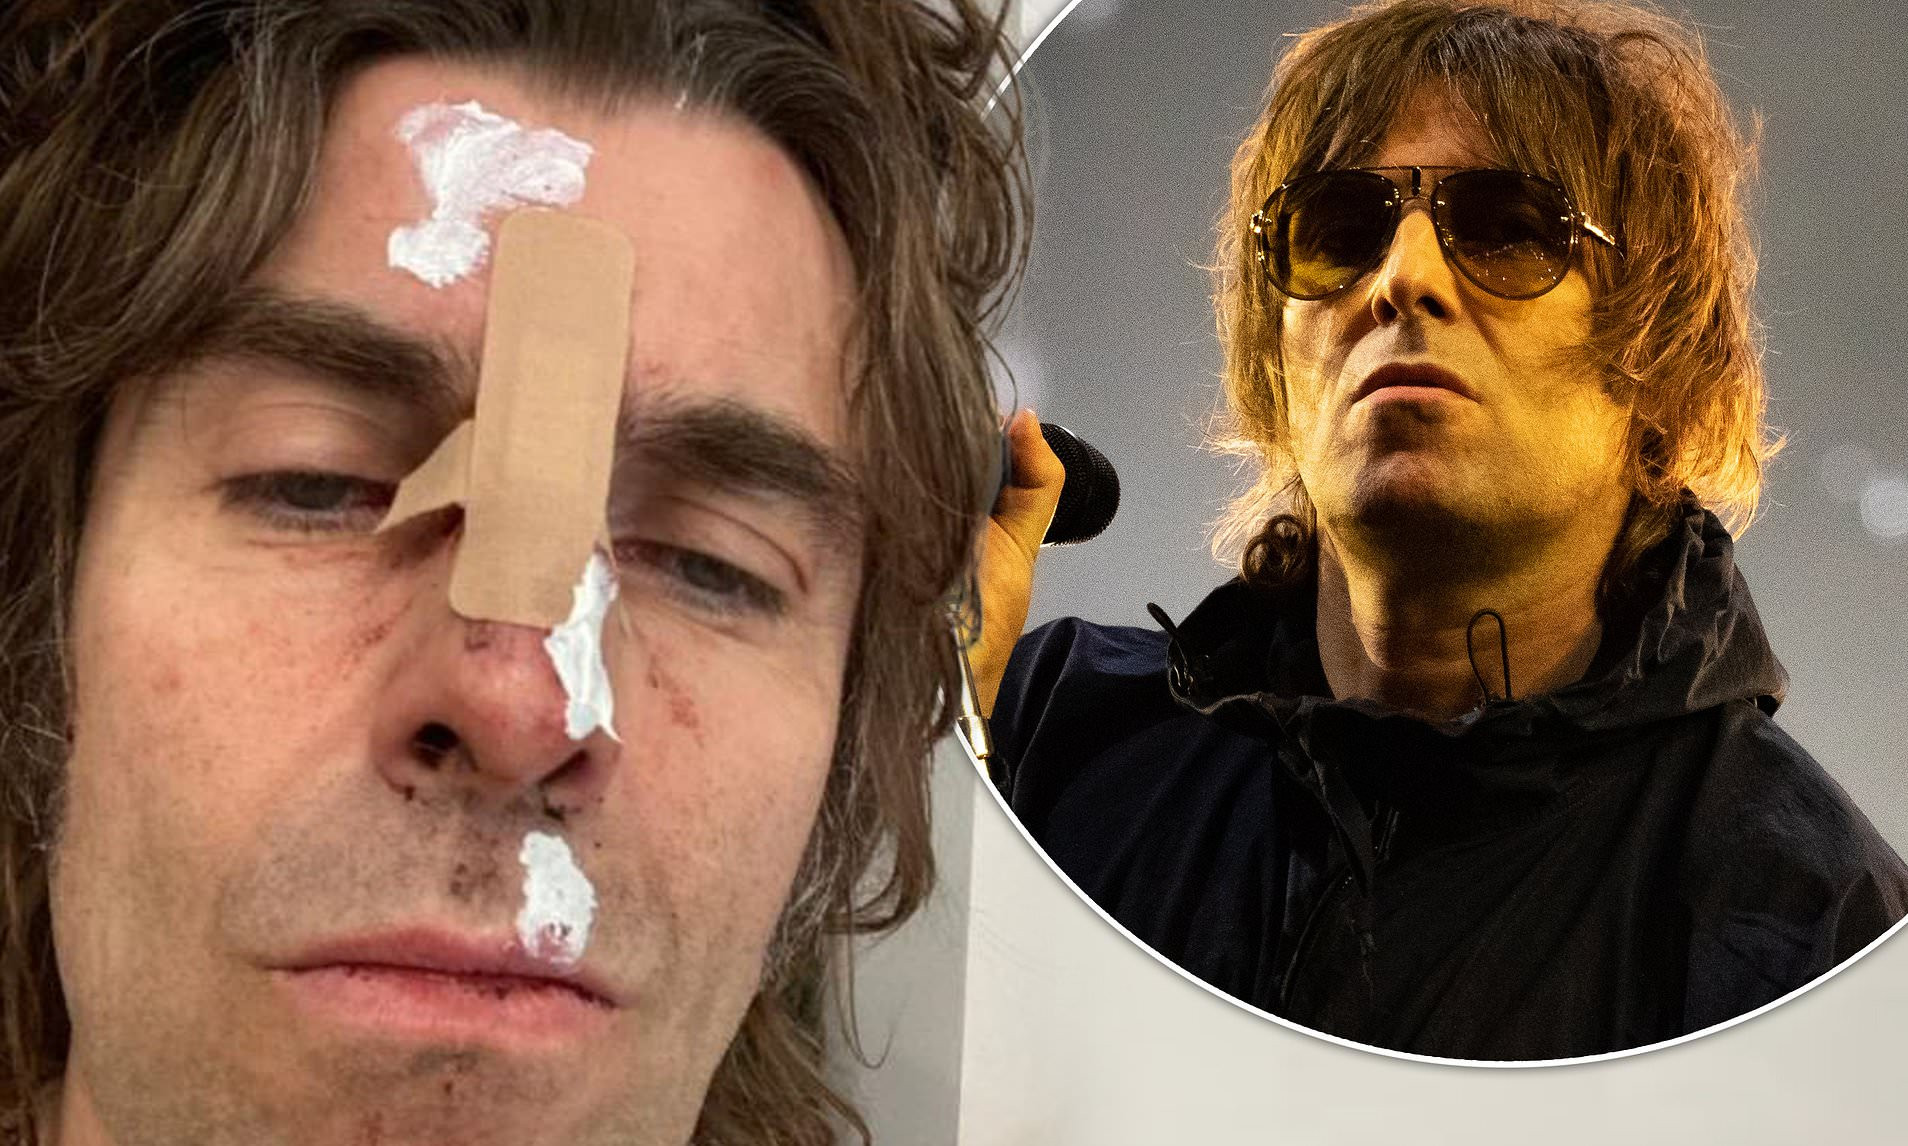 Singer Liam Gallagher suffers face injury after falling off a helicopter